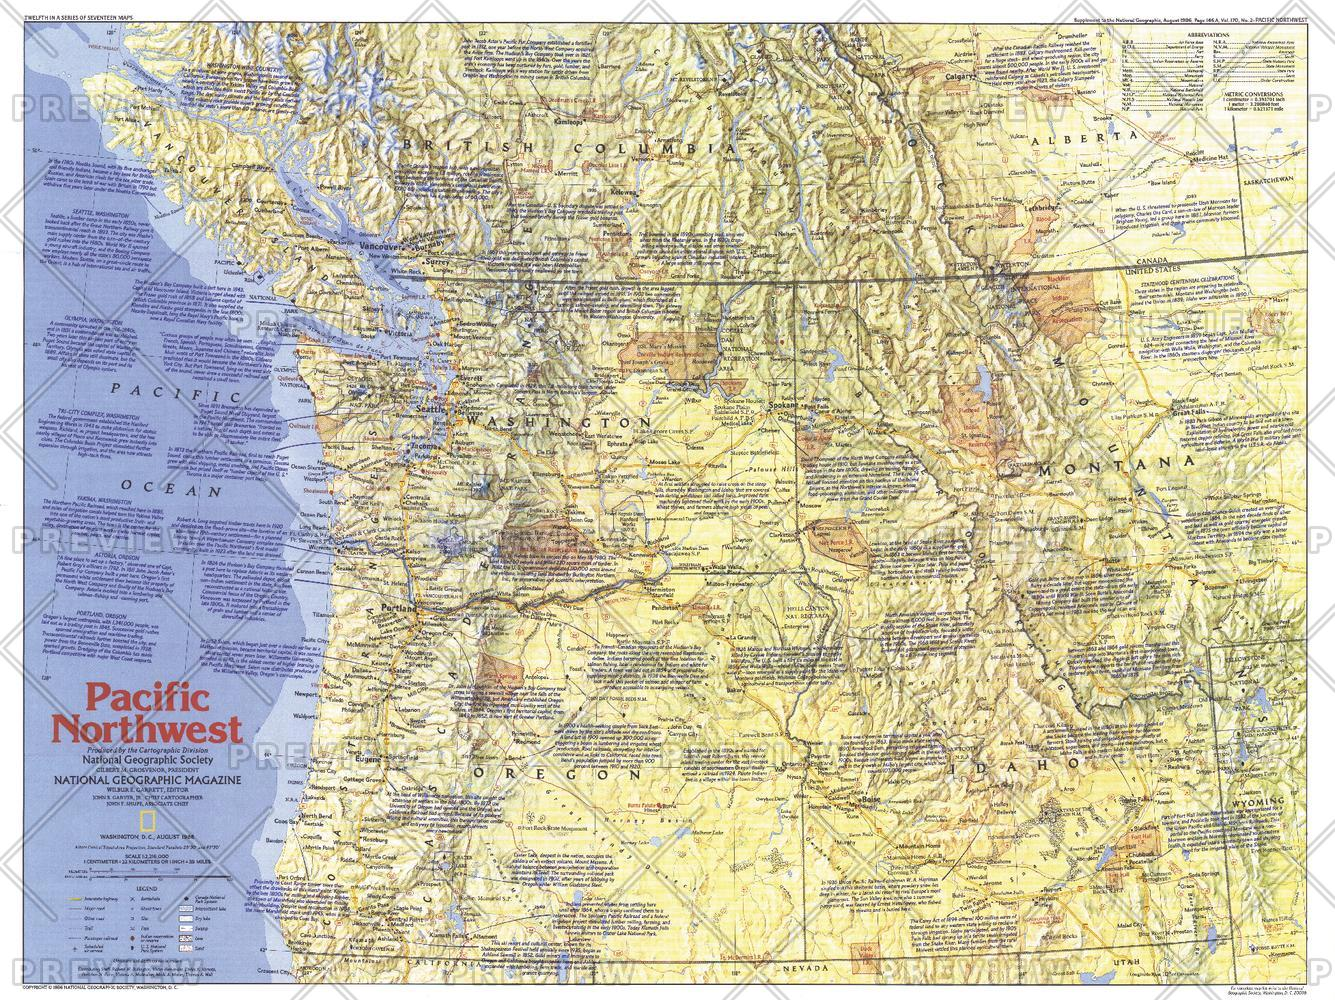 Pacific Northwest   Side 1 - Published 1986